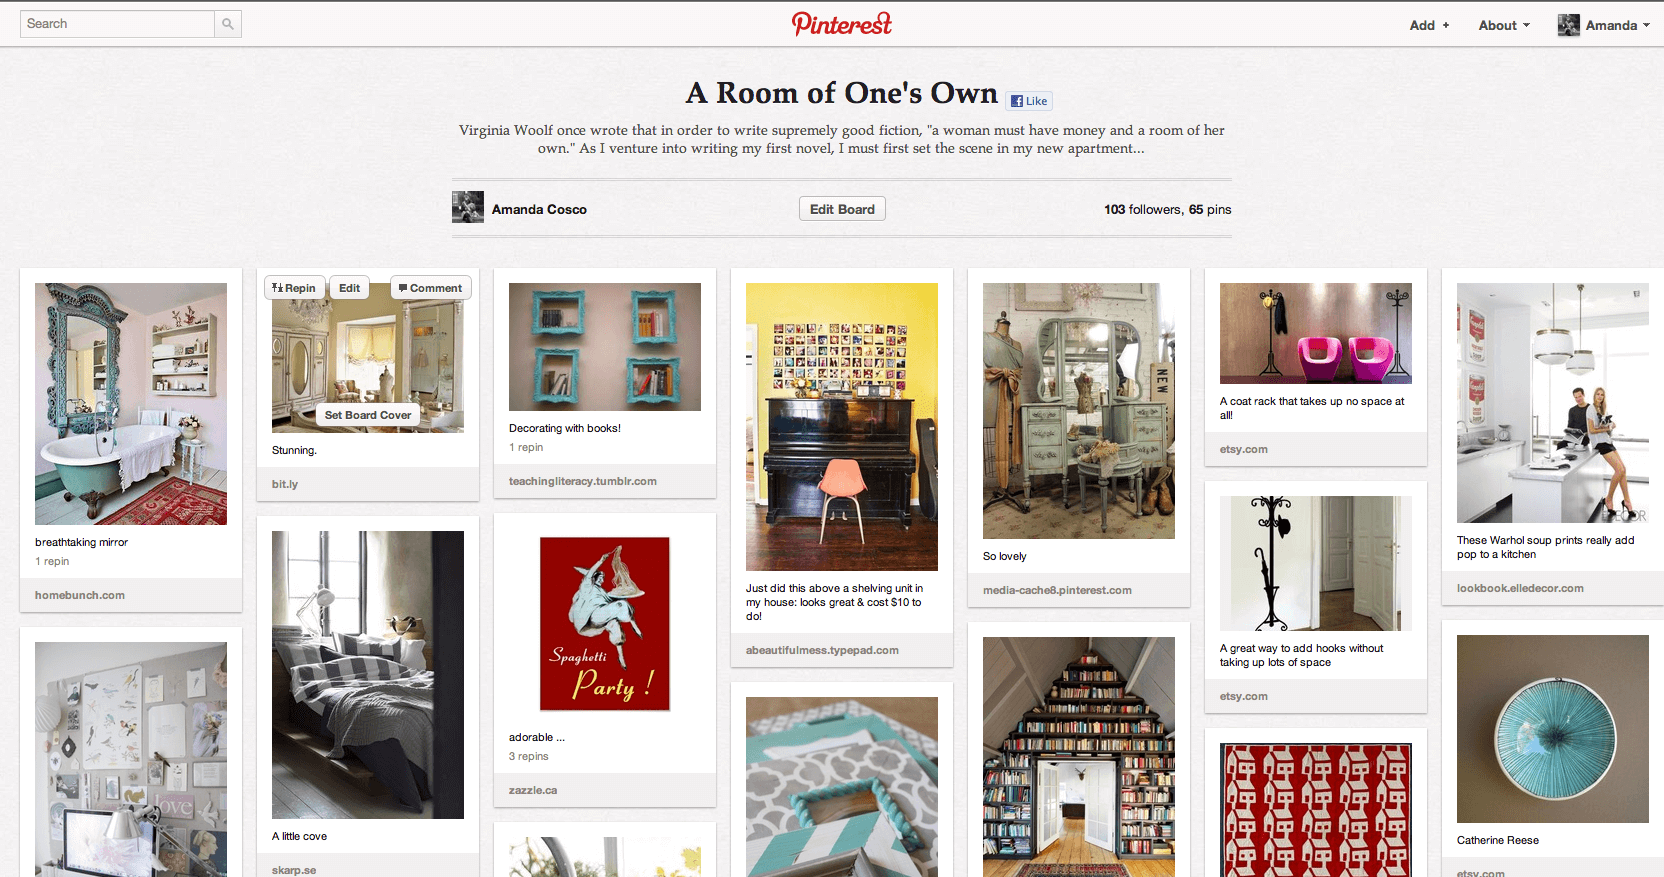 Screenshot of Pinterest homepage